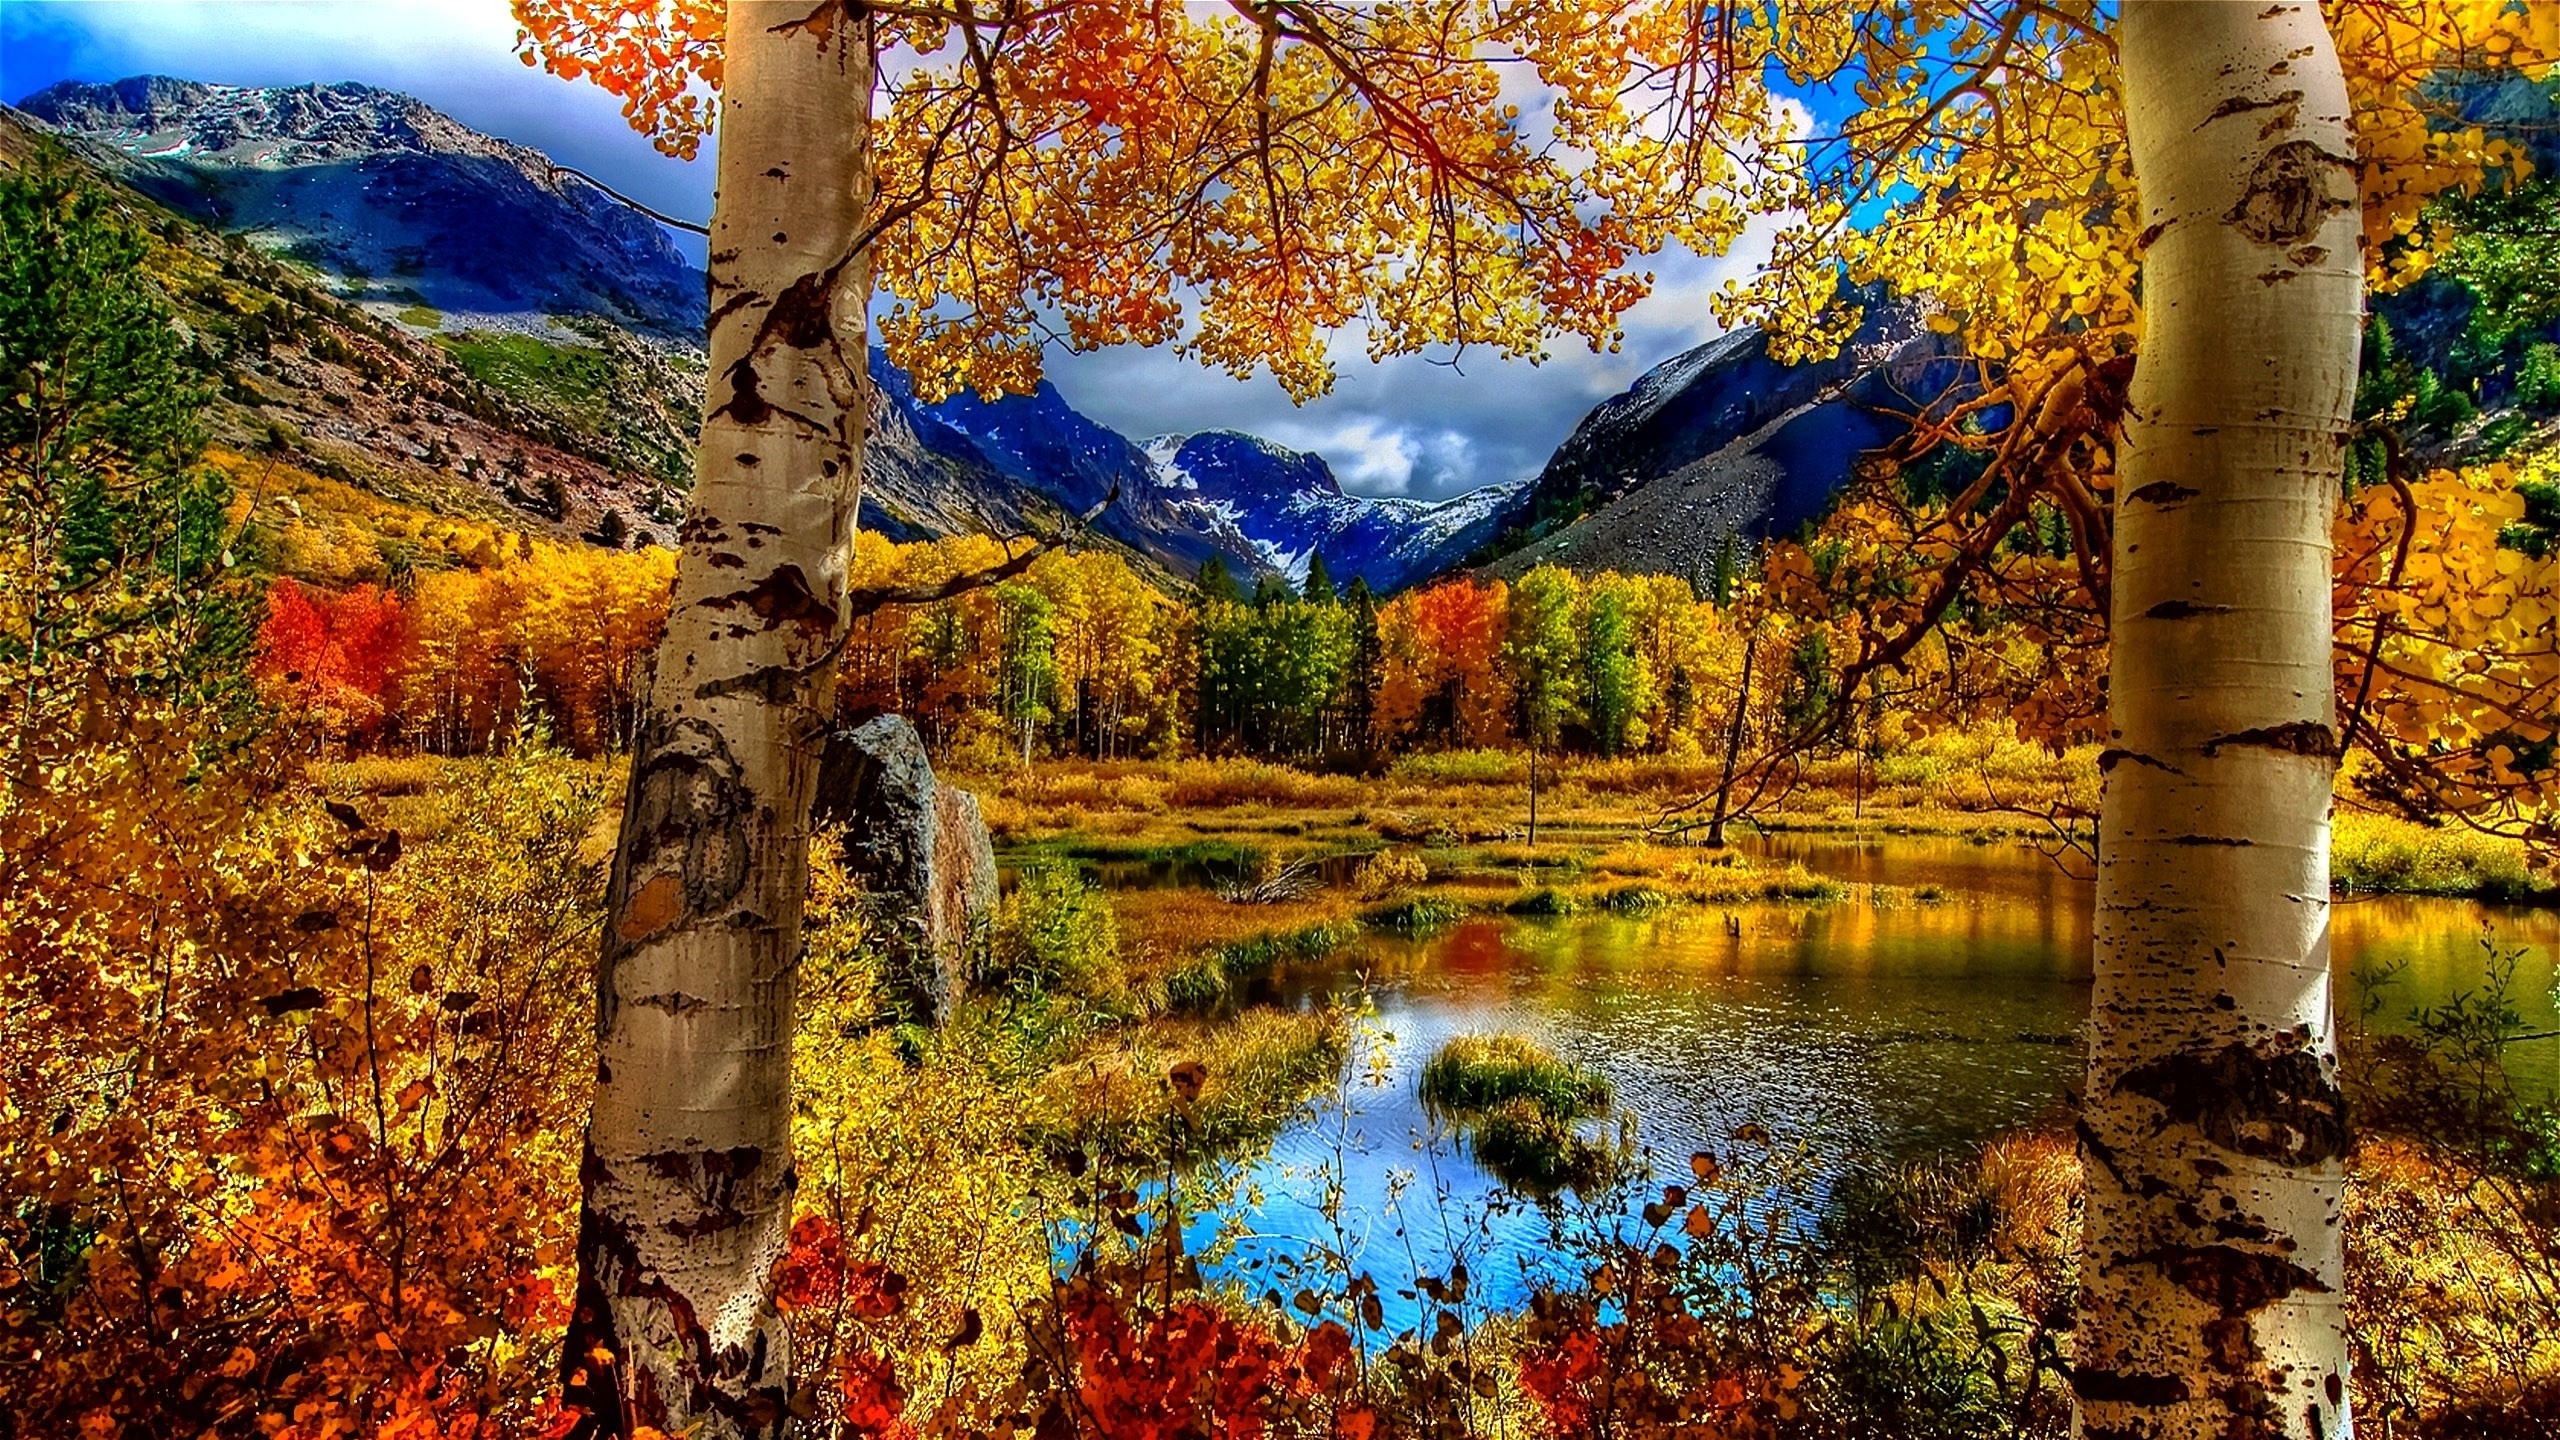 Fall Computer Backgrounds 76 images 2560x1440